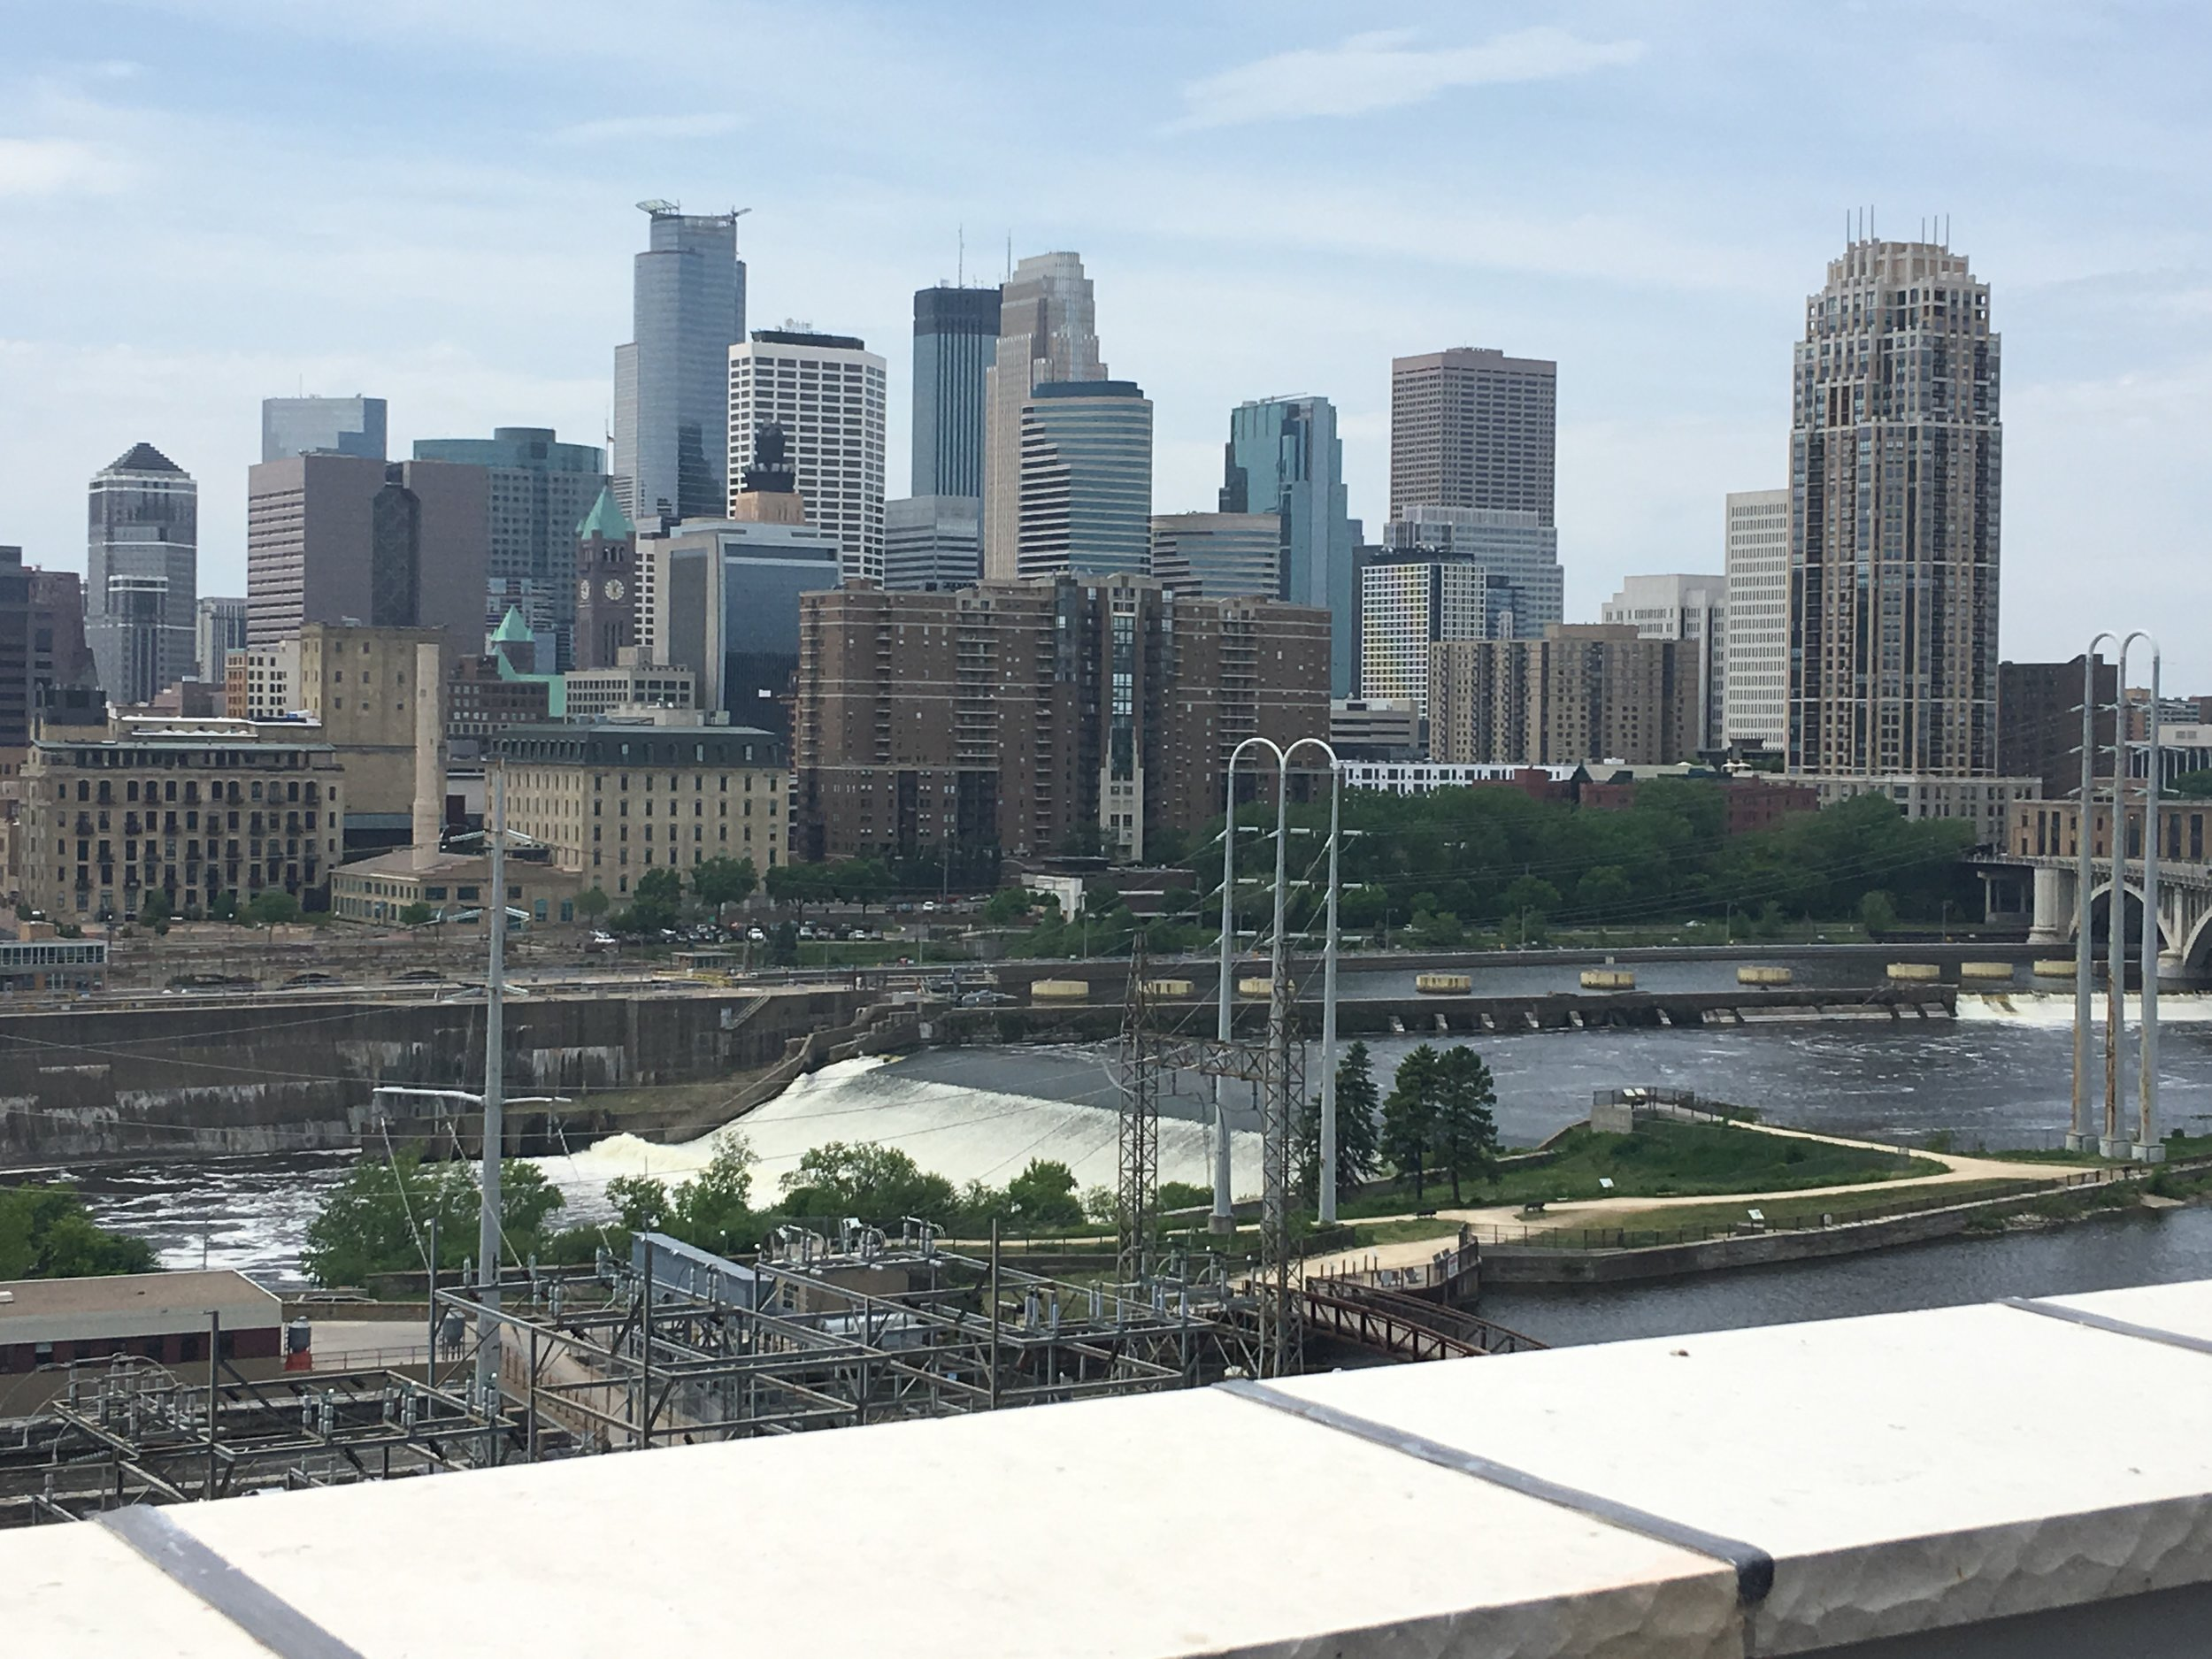 Beautiful skyline of Minneapolis as seen from the Mill City Museum deck